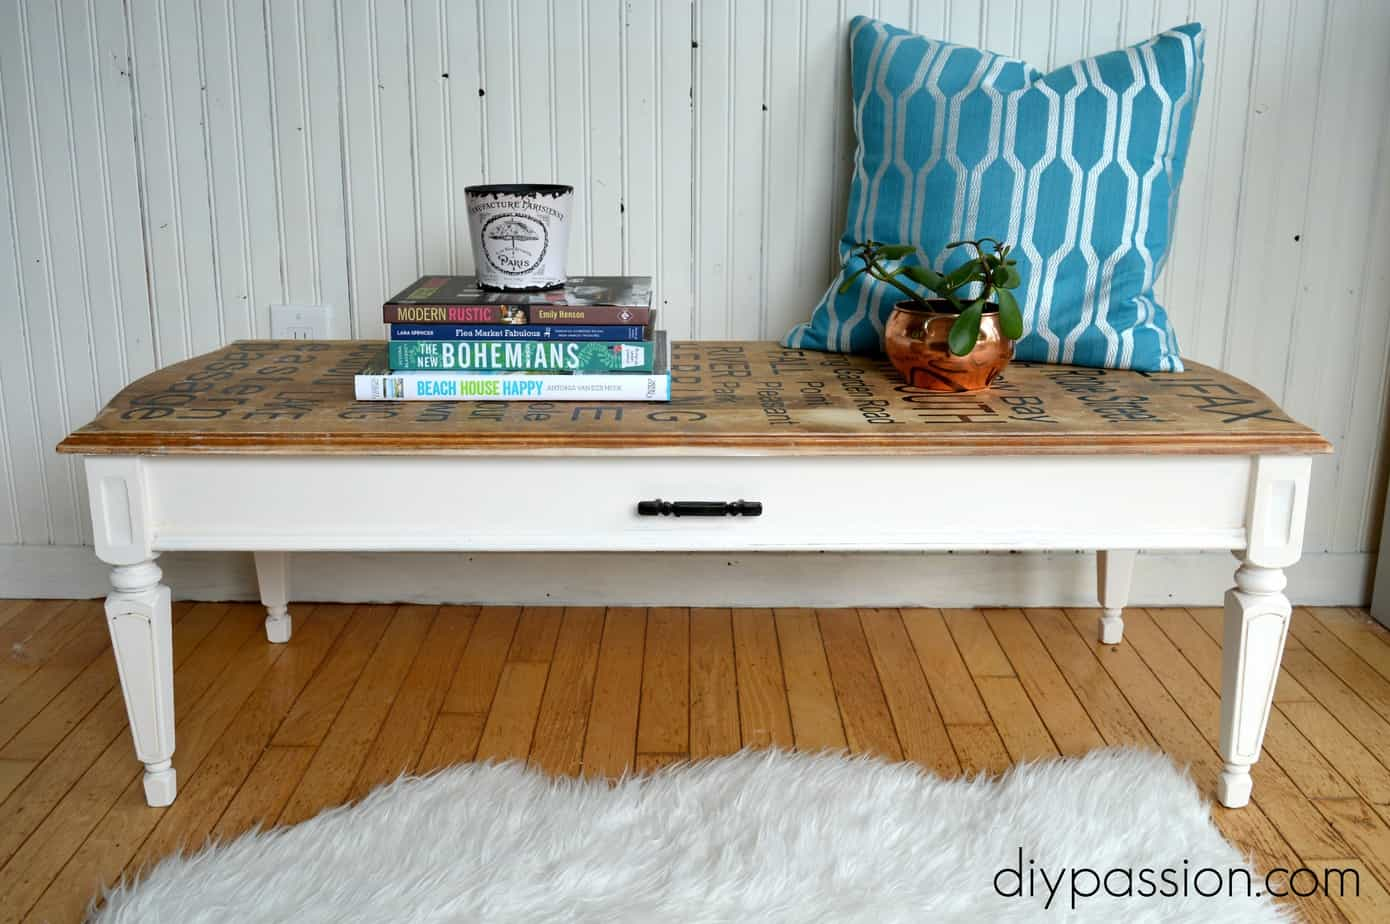 make your own typography table full tutorial diy passion